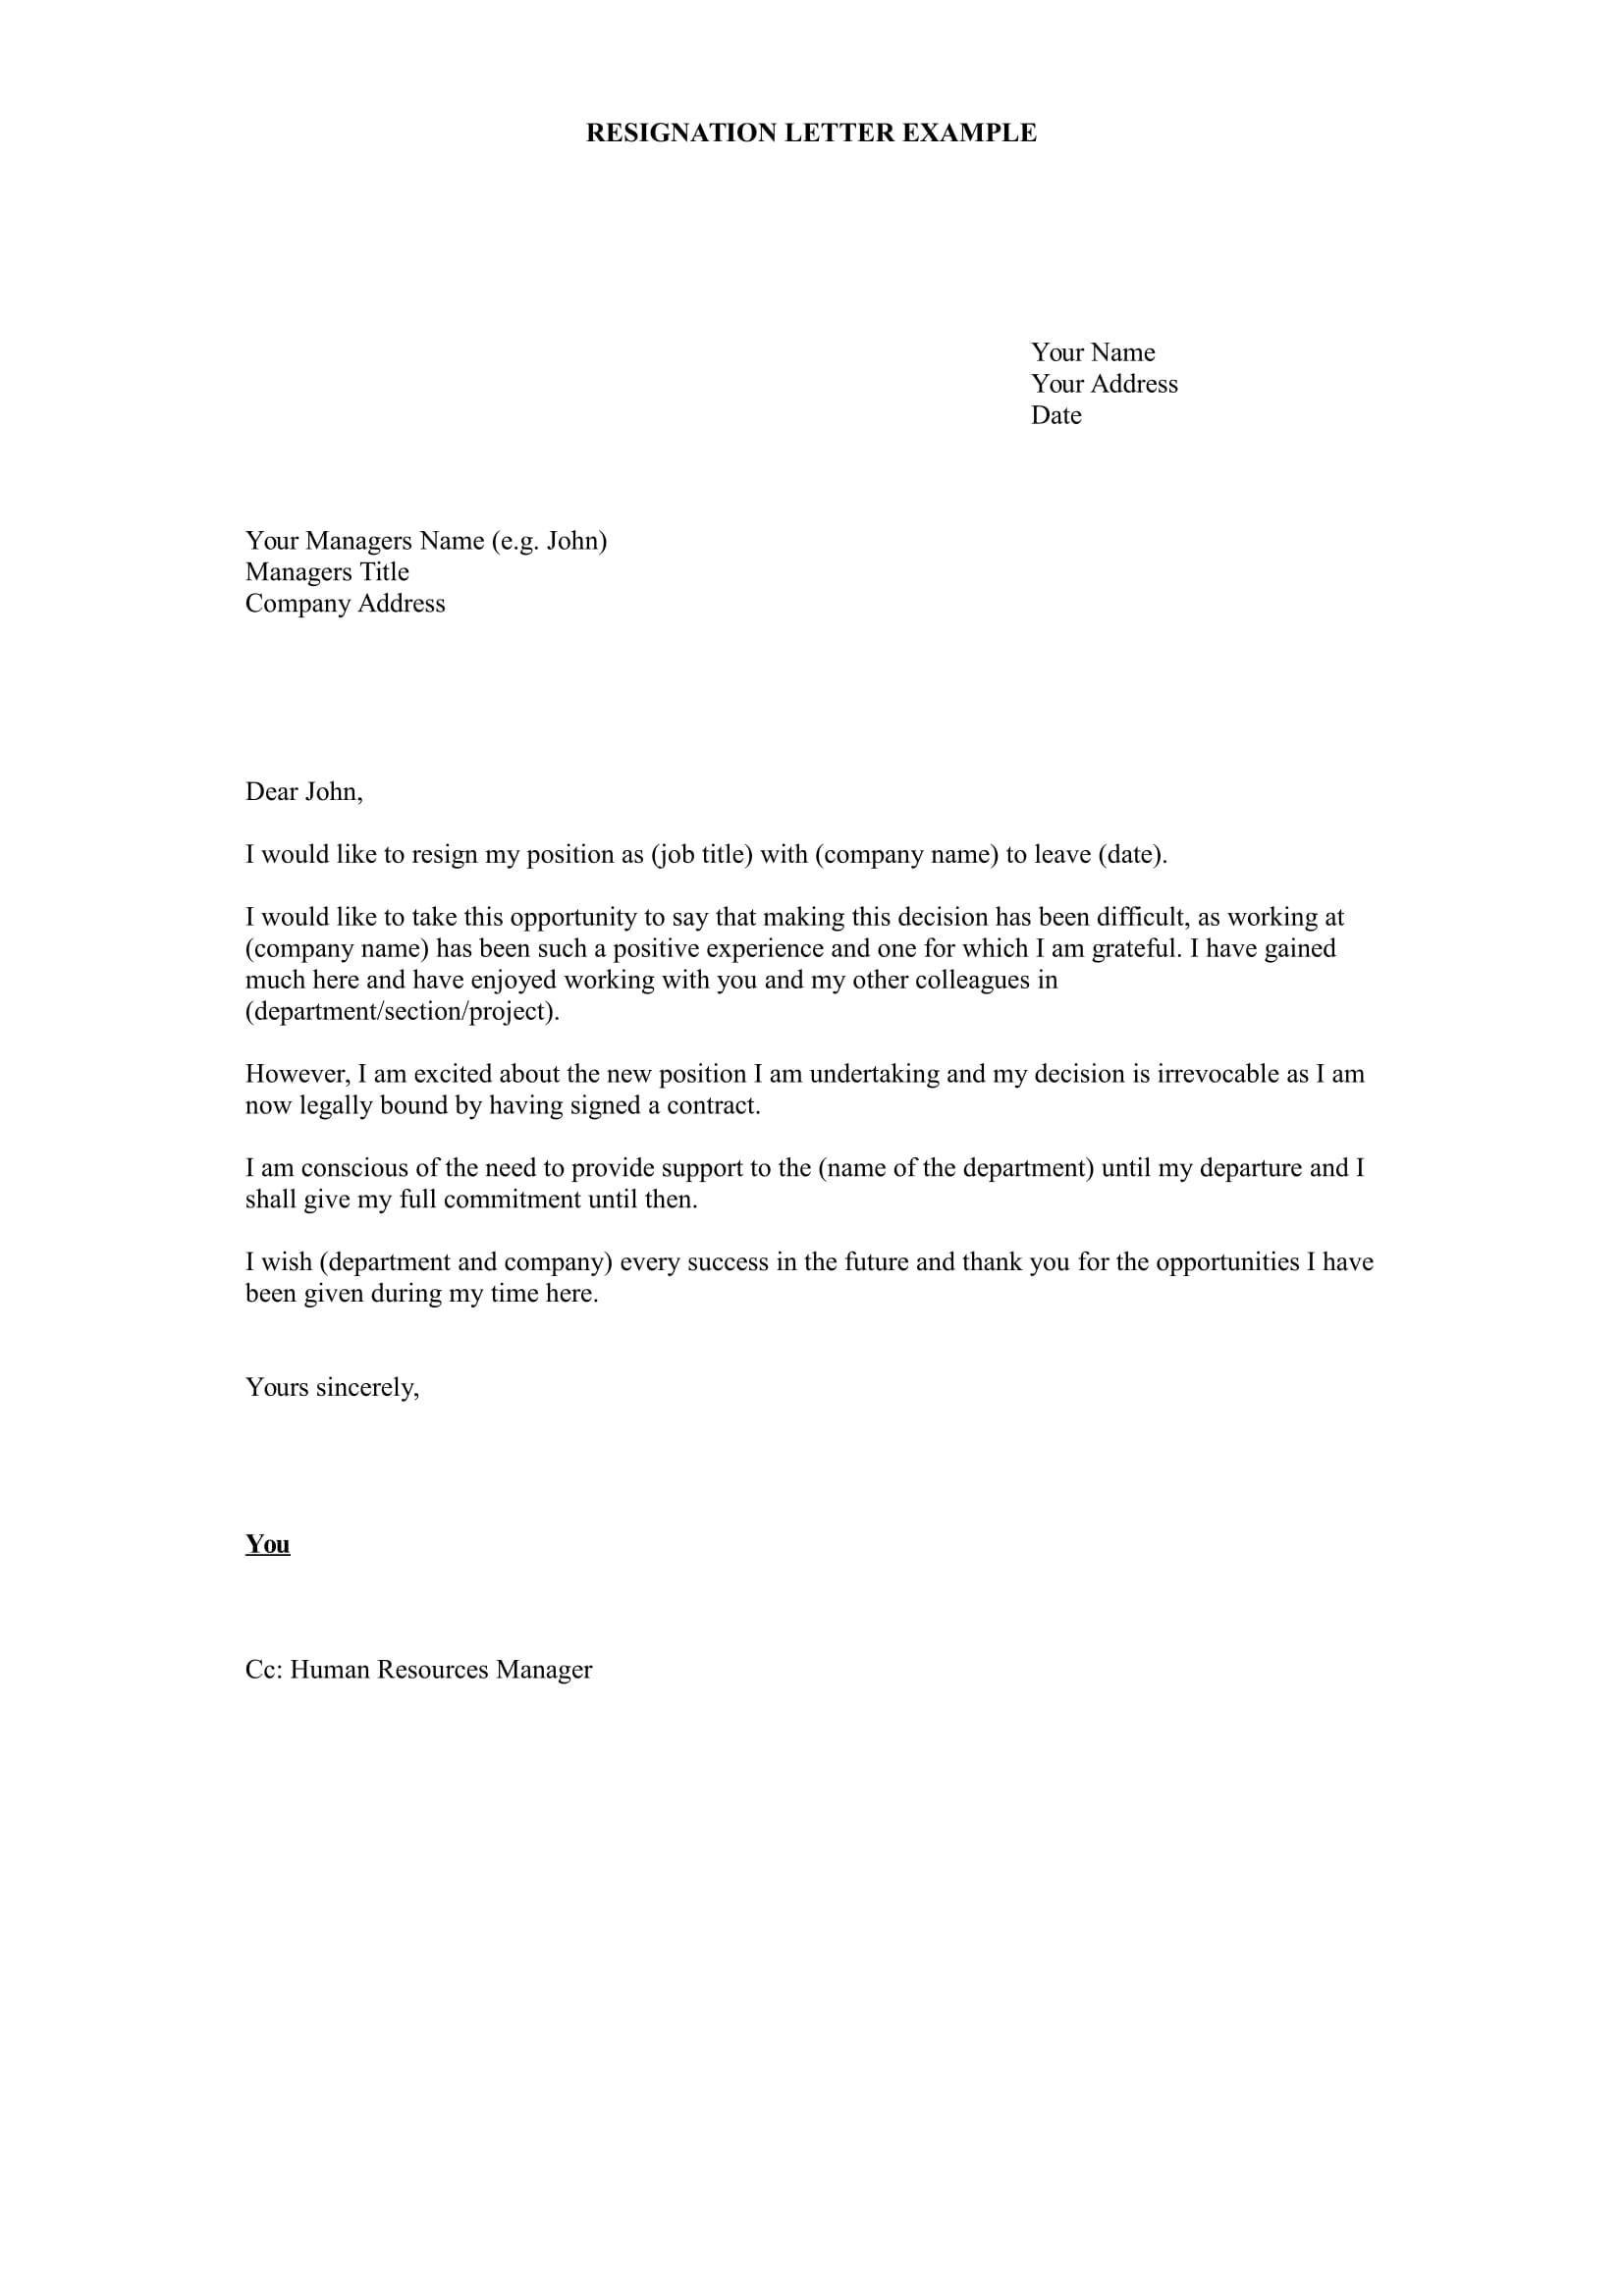 Microsoft Word Letter Of Resignation Template from images.examples.com